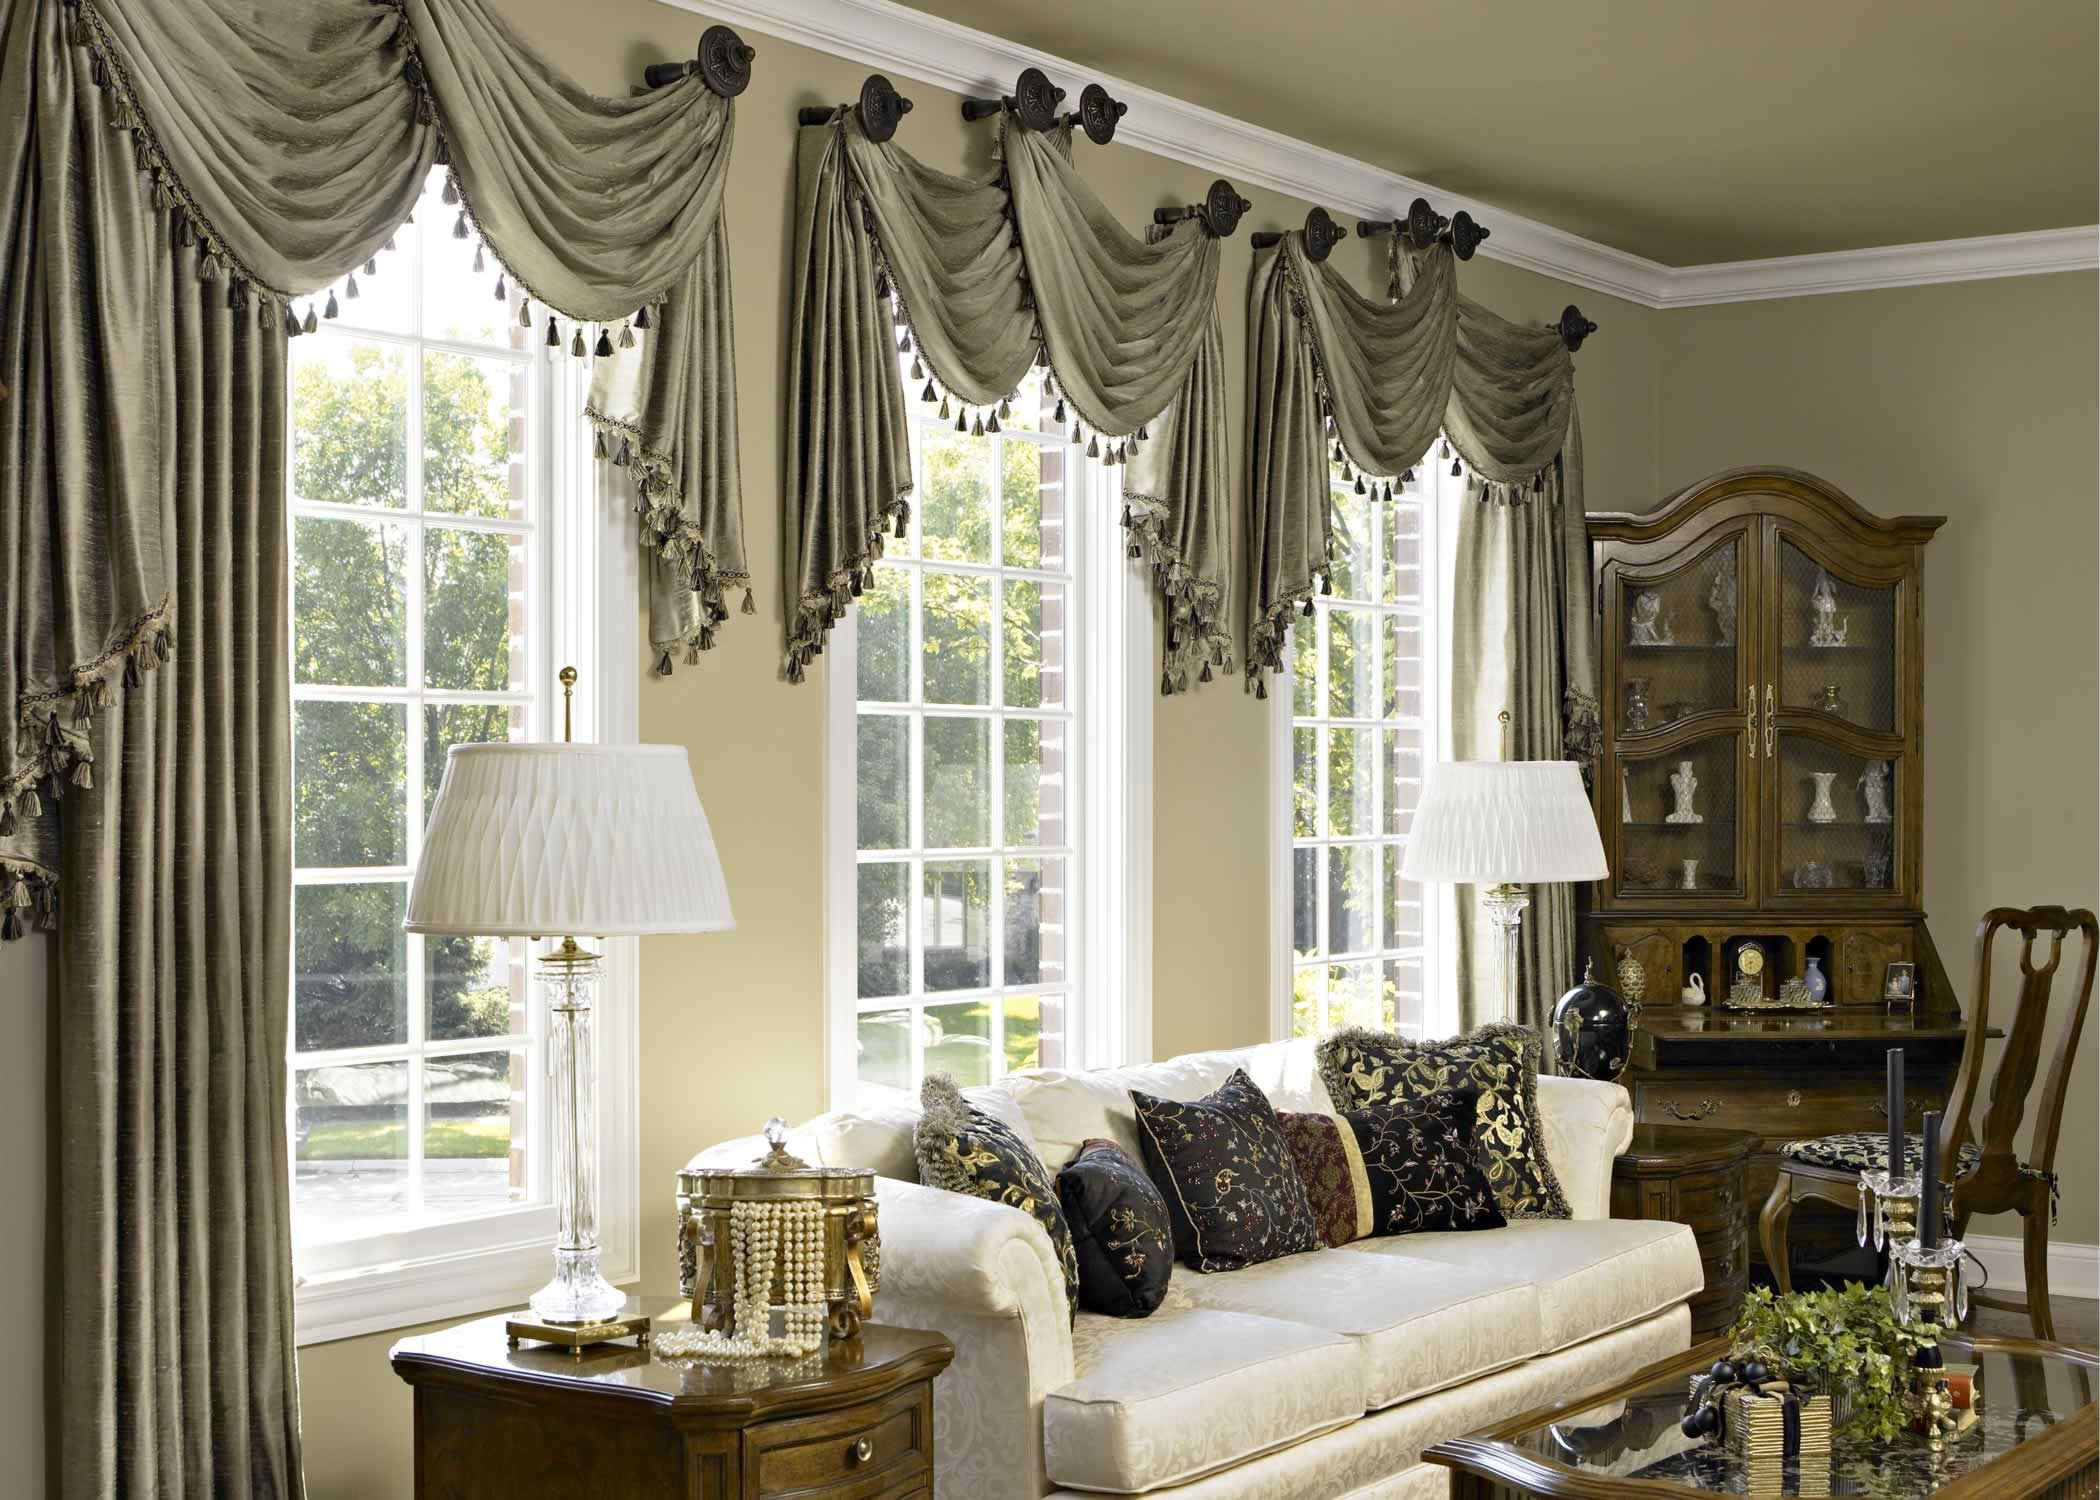 Accesories U0026 Decors,Gray Fabric Scarf Over Valance As Window Treatment For  Spring Living Room Window Treatment Ideas Added White Couch And Corner  Cabinetry ... Part 14